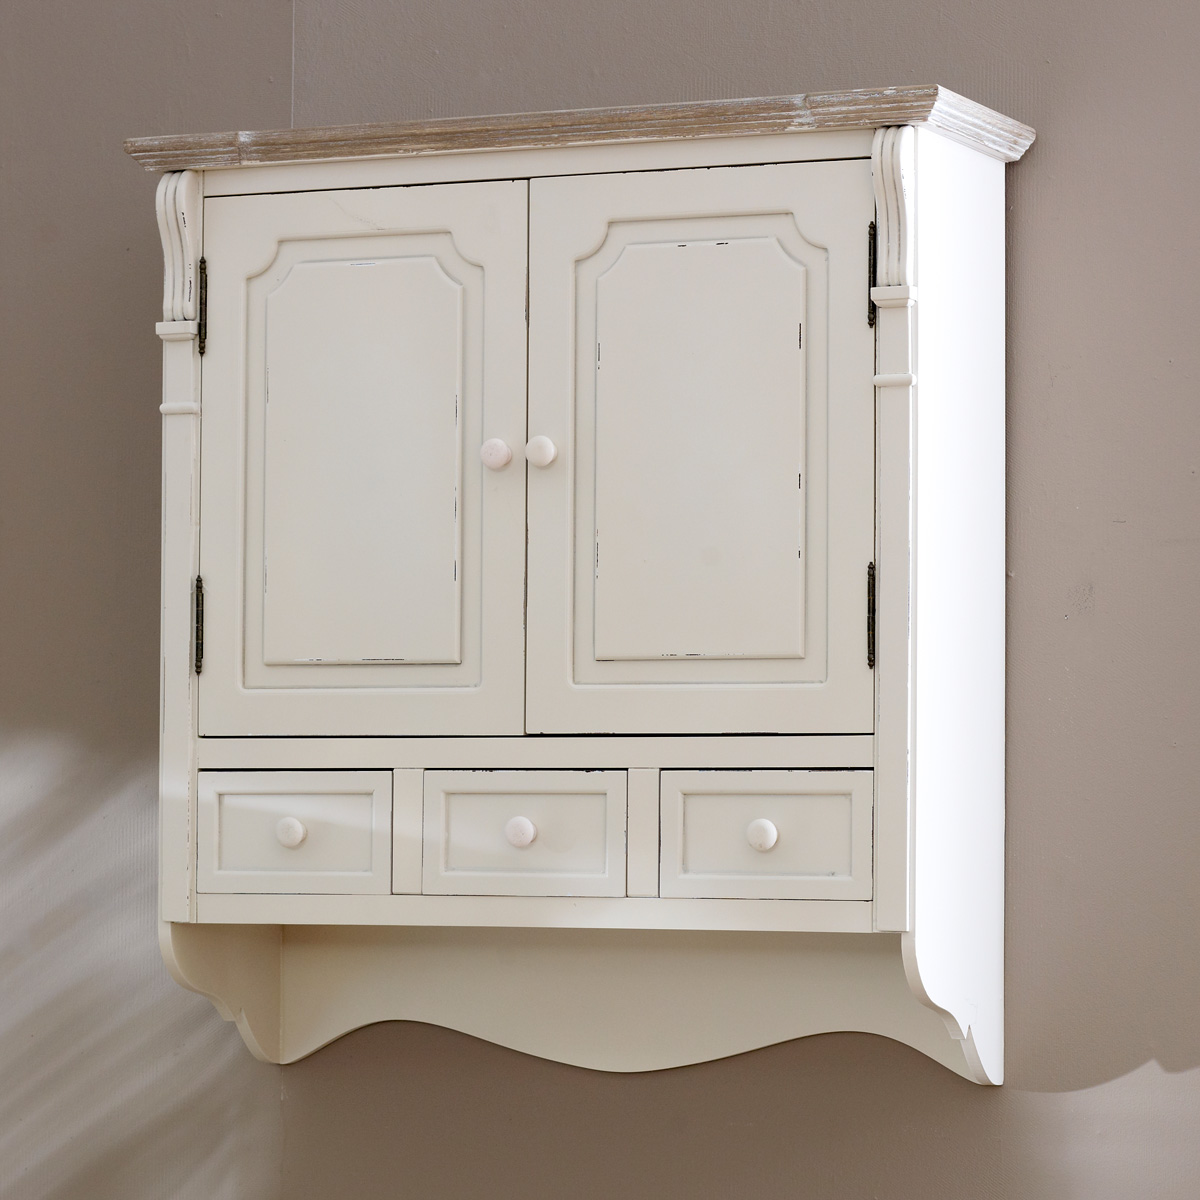 Country Cream Style Vintage Wall Cabinet Cupboard Storage